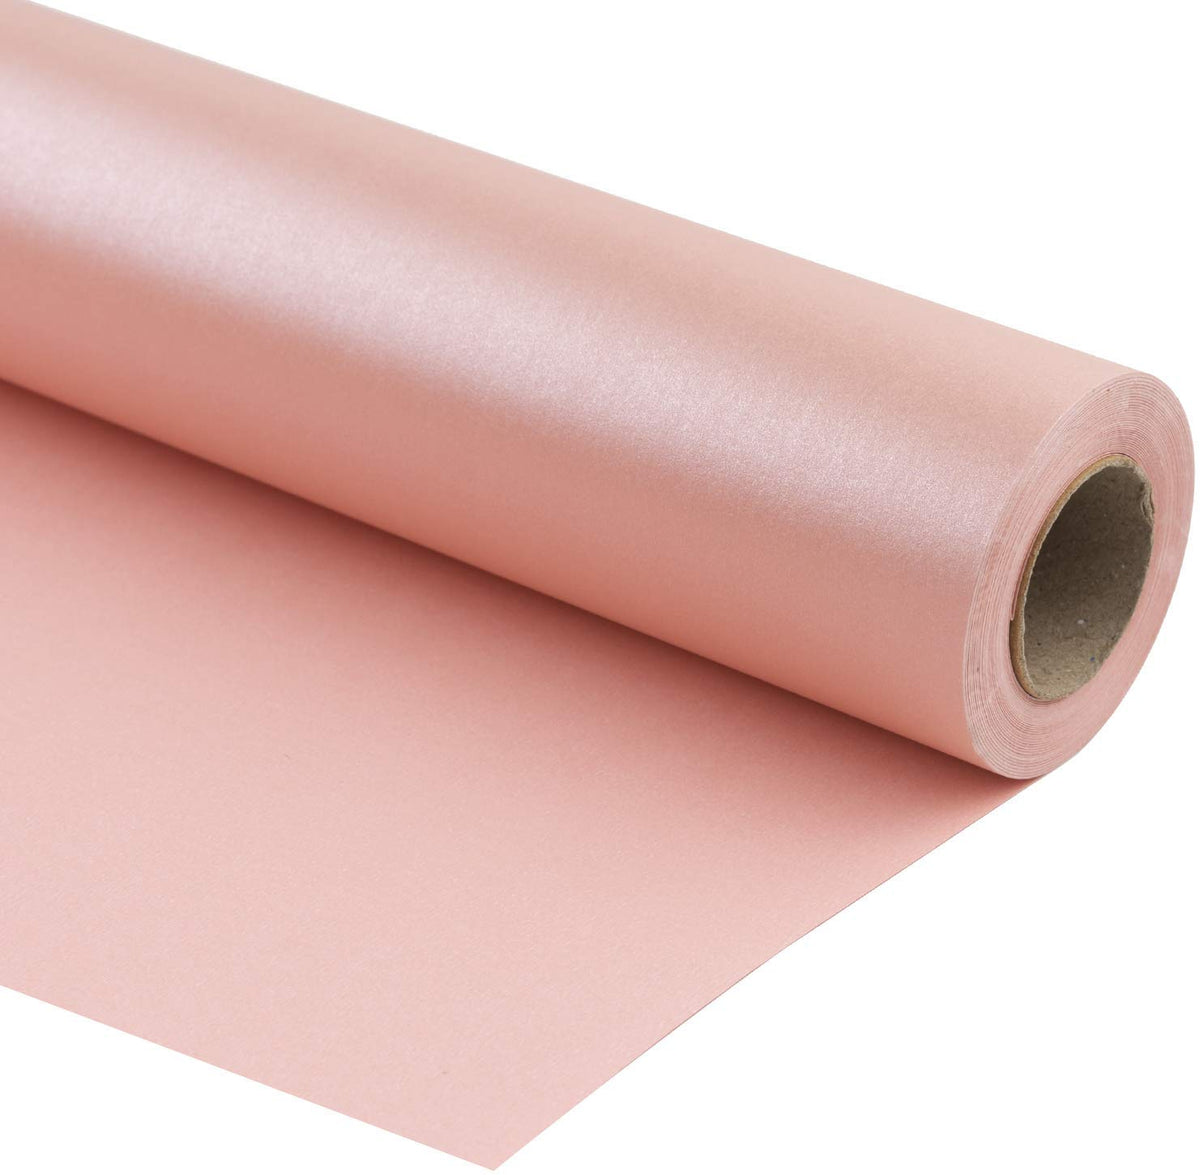 Wrapaholic-Jewelry-Wrapping-Paper-Roll-Pink-m